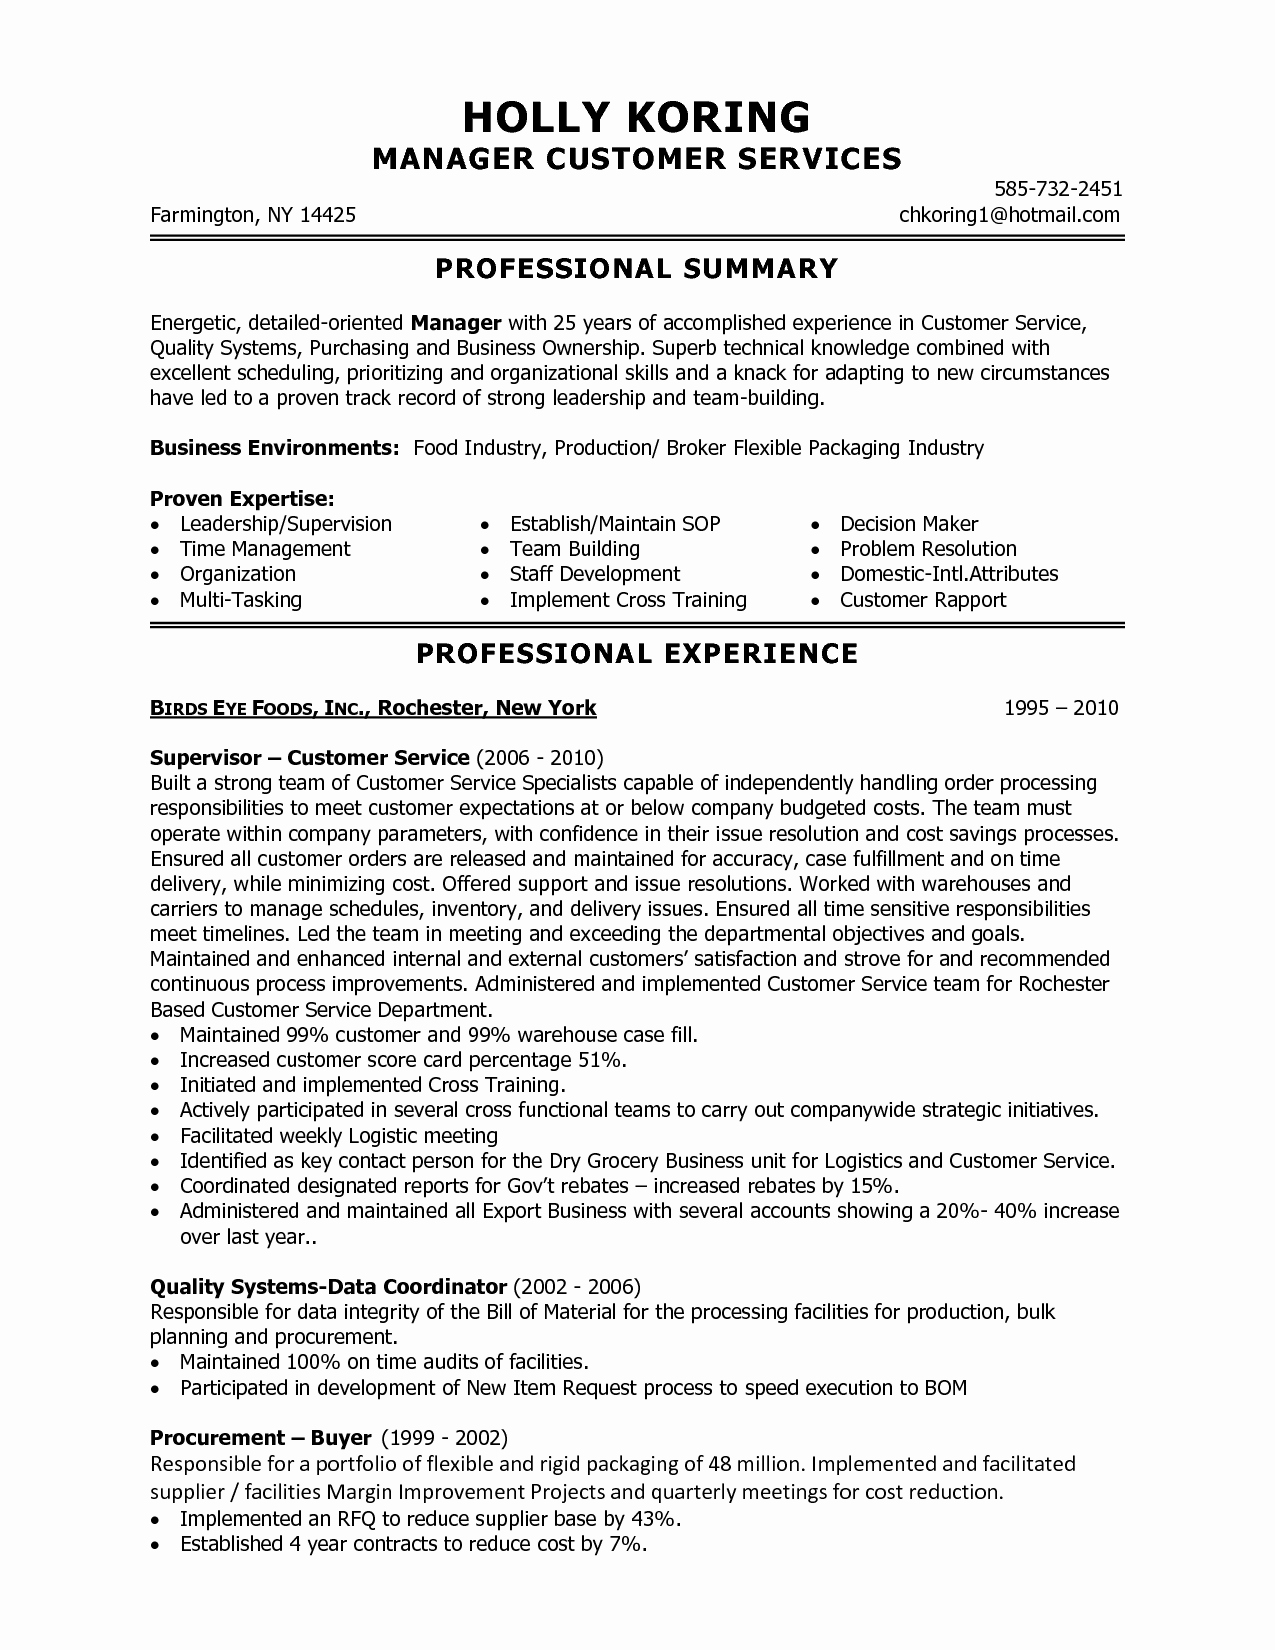 Key attributes Resume Resume Ideas